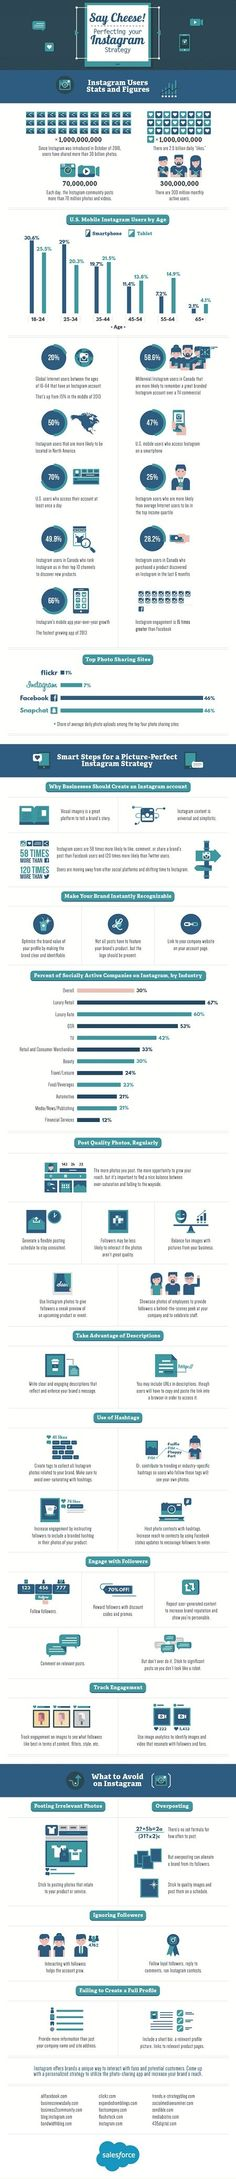 Social Media - Quick Tips for Perfecting Your Instagram Strategy [Infographic] : MarketingProfs Article